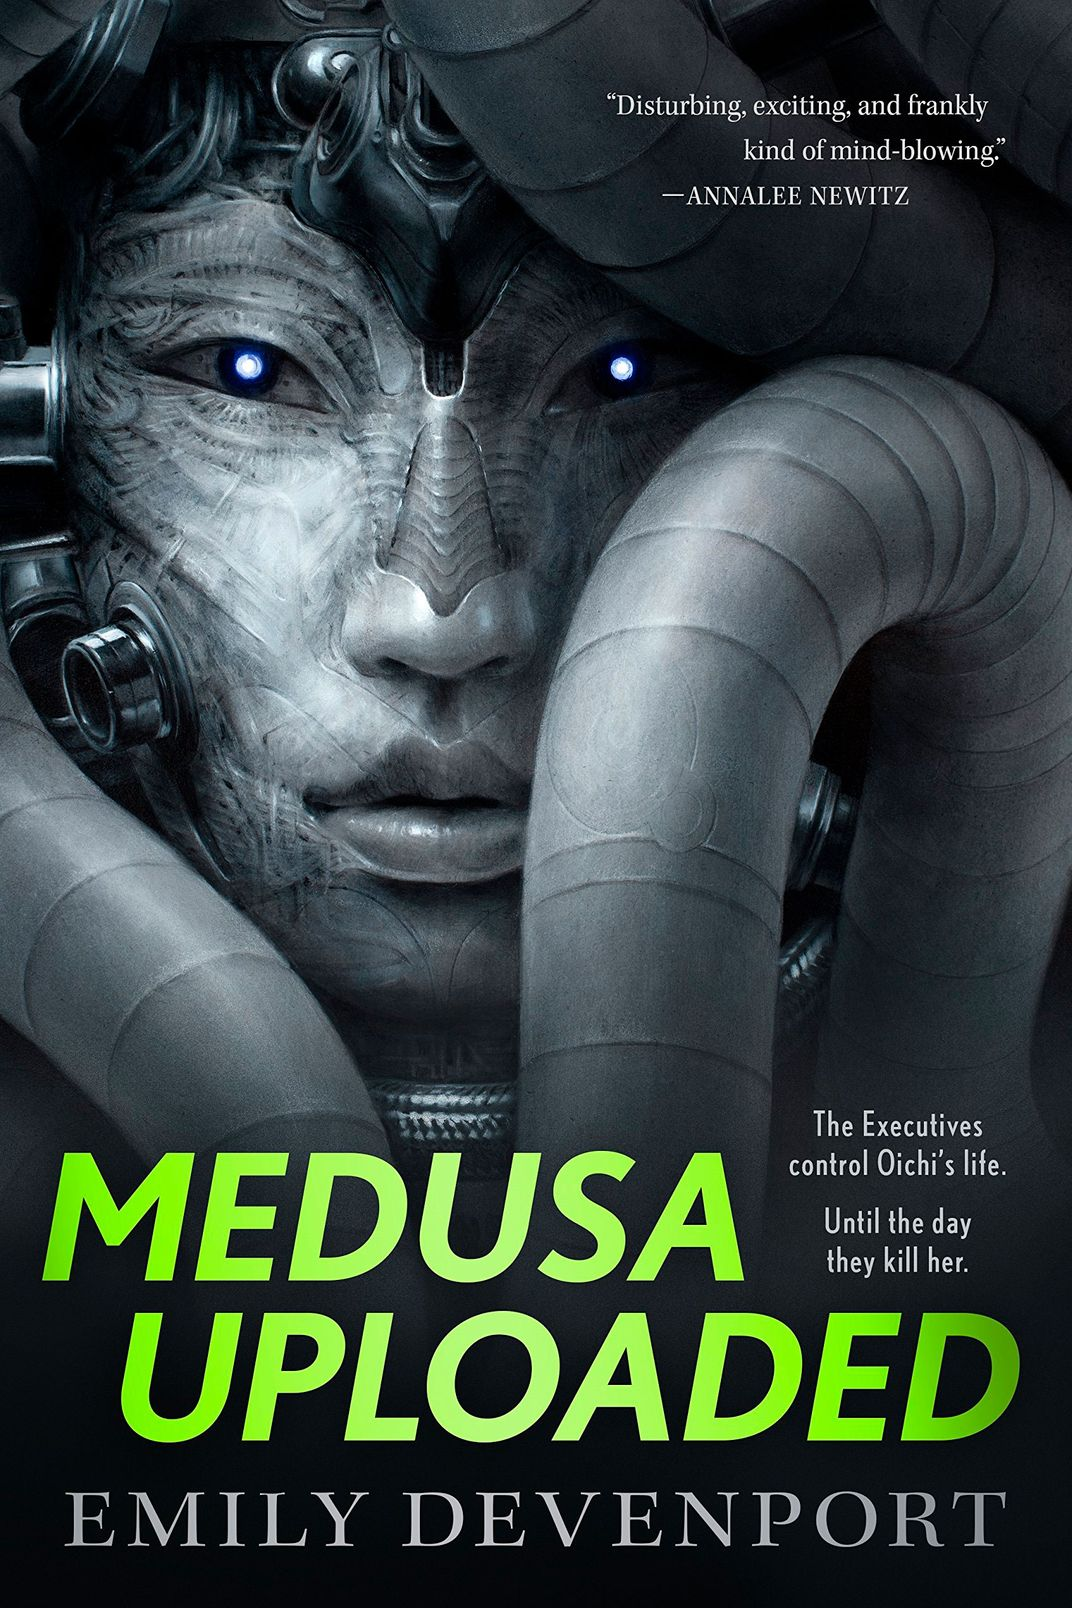 10. <em>Medusa Uploaded</em>, by Emily Devenport